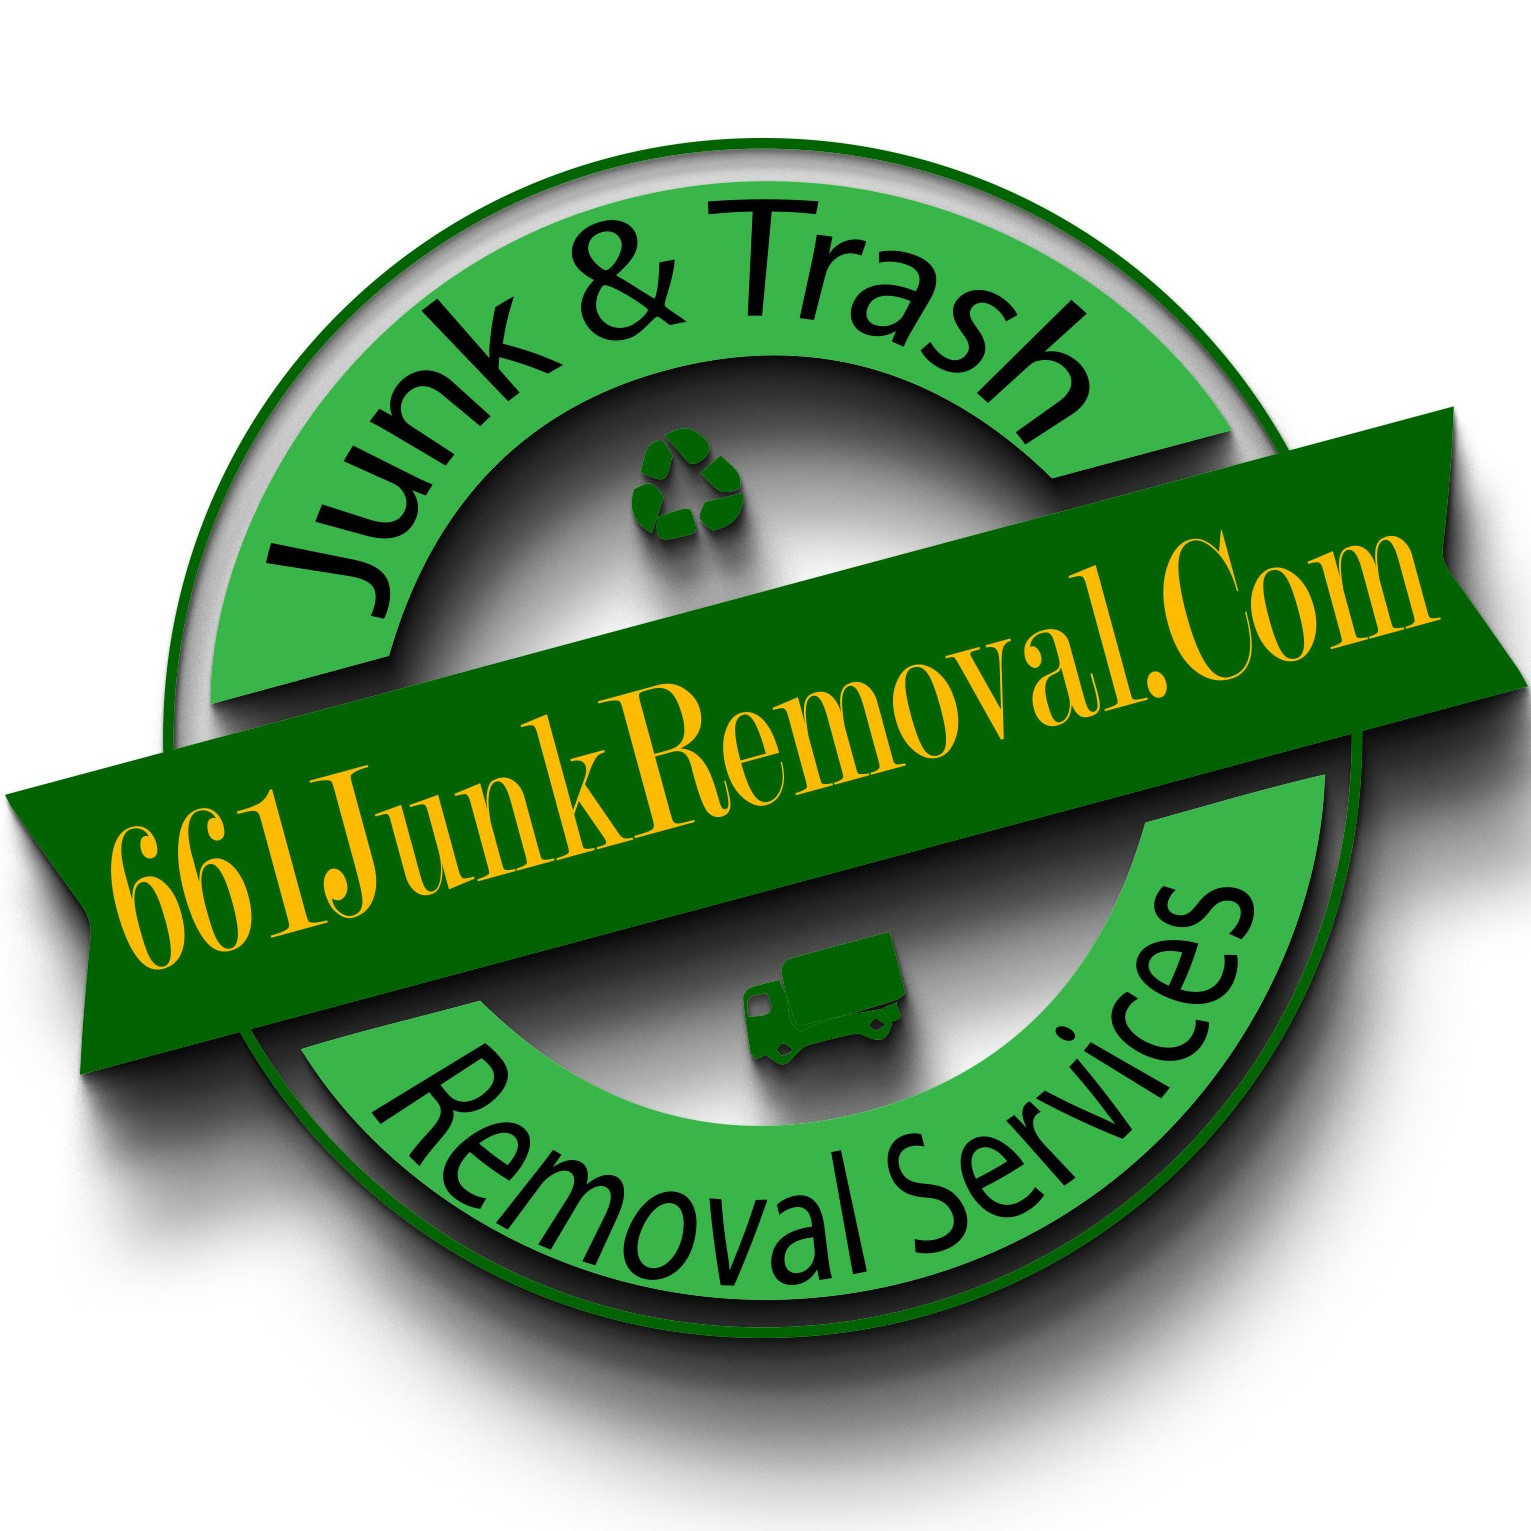 Palmdale and Lancaster | JUNK and TRASH REMOVAL | 661JunkRemoval com